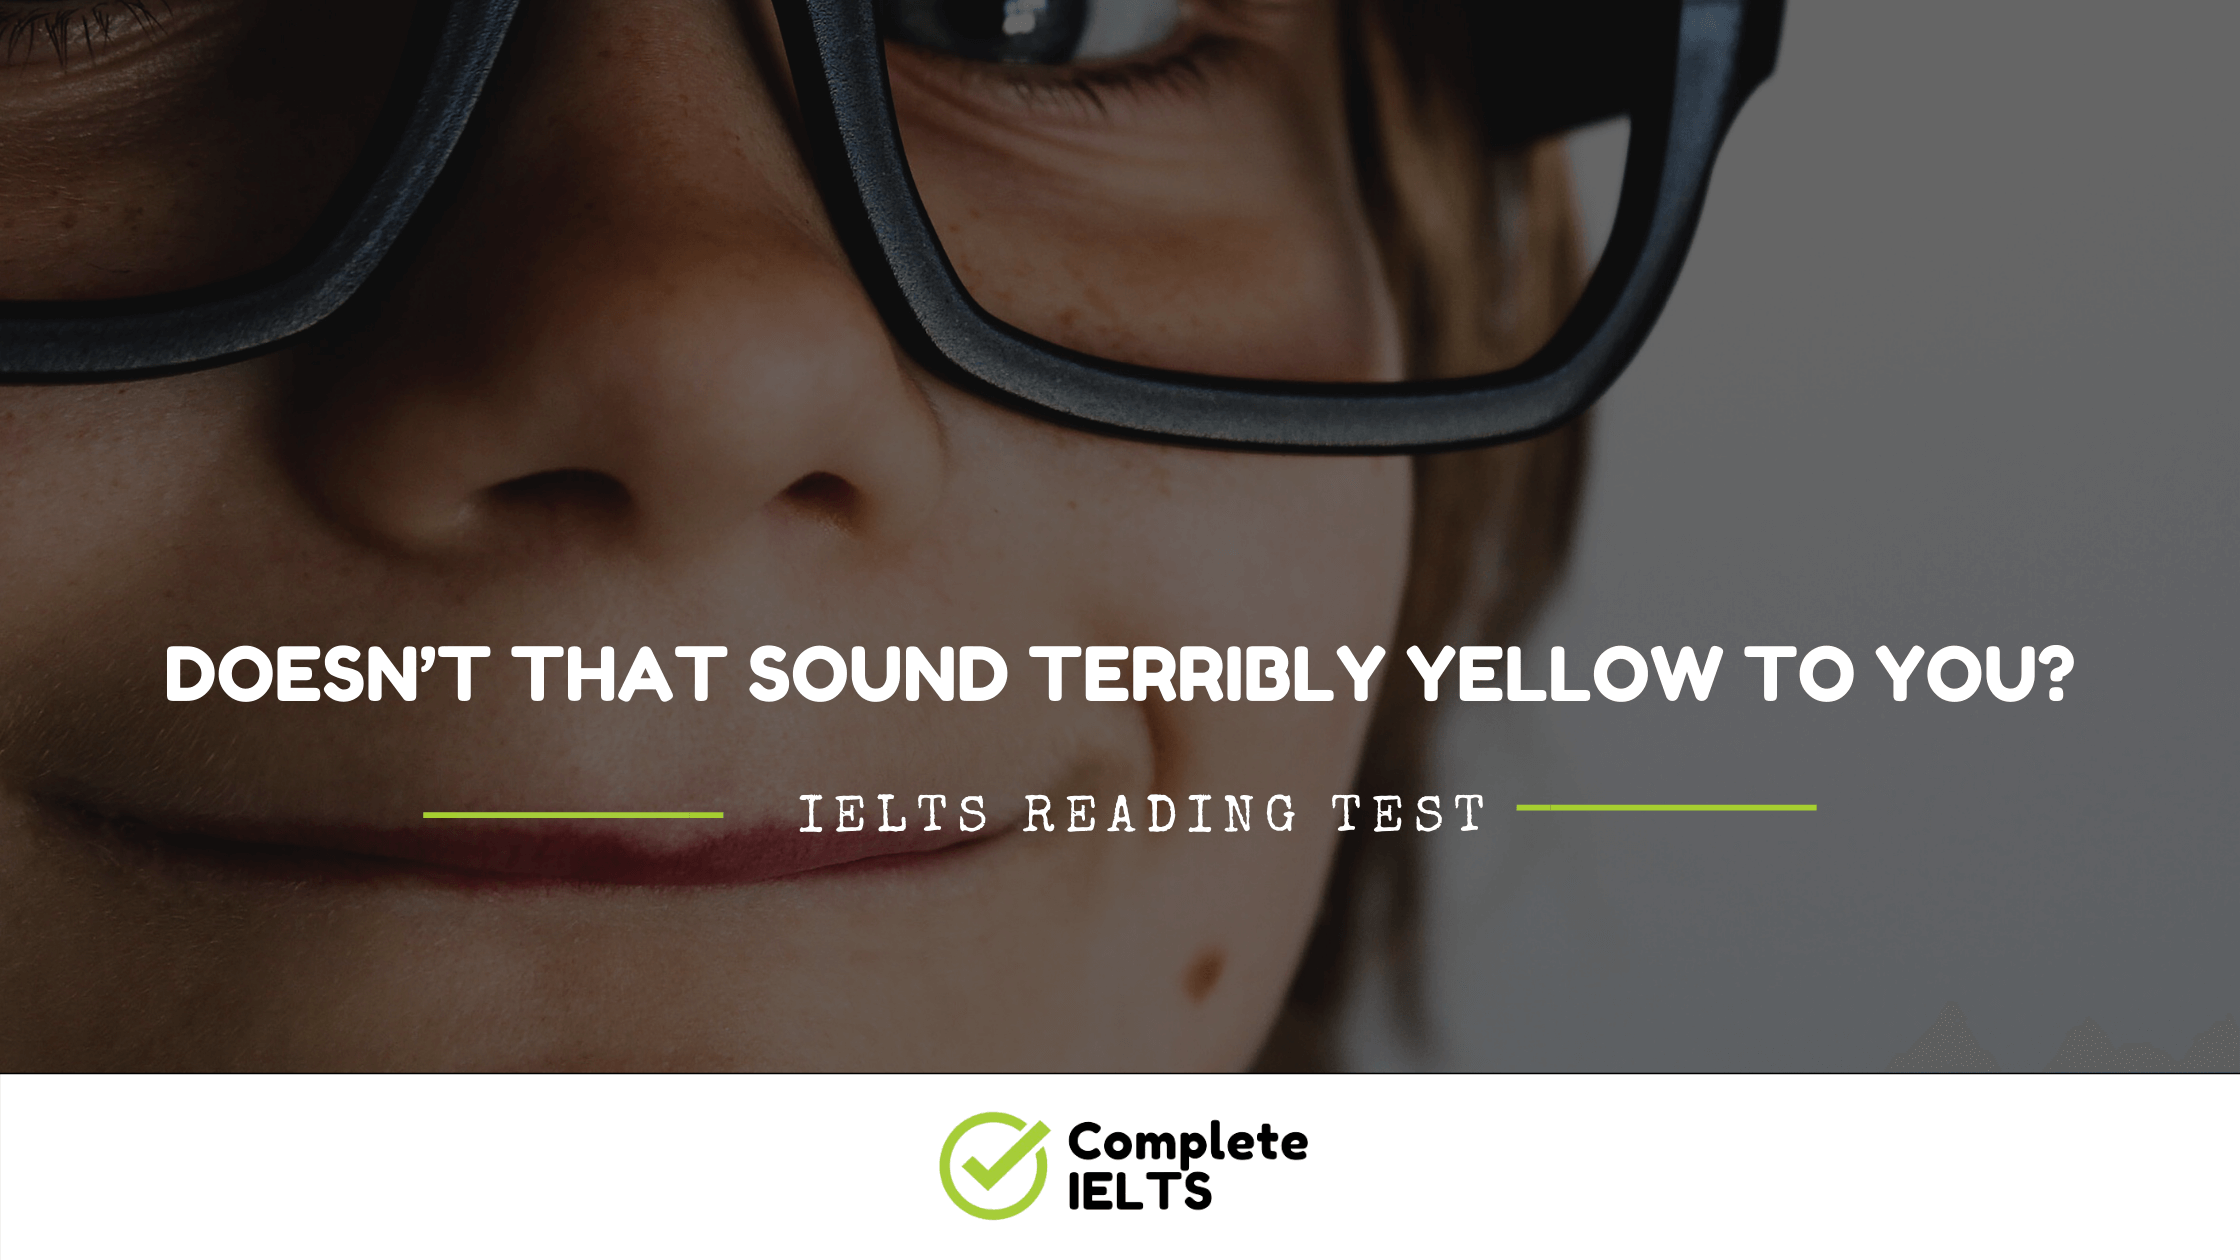 Doesn't that sound terribly yellow to you